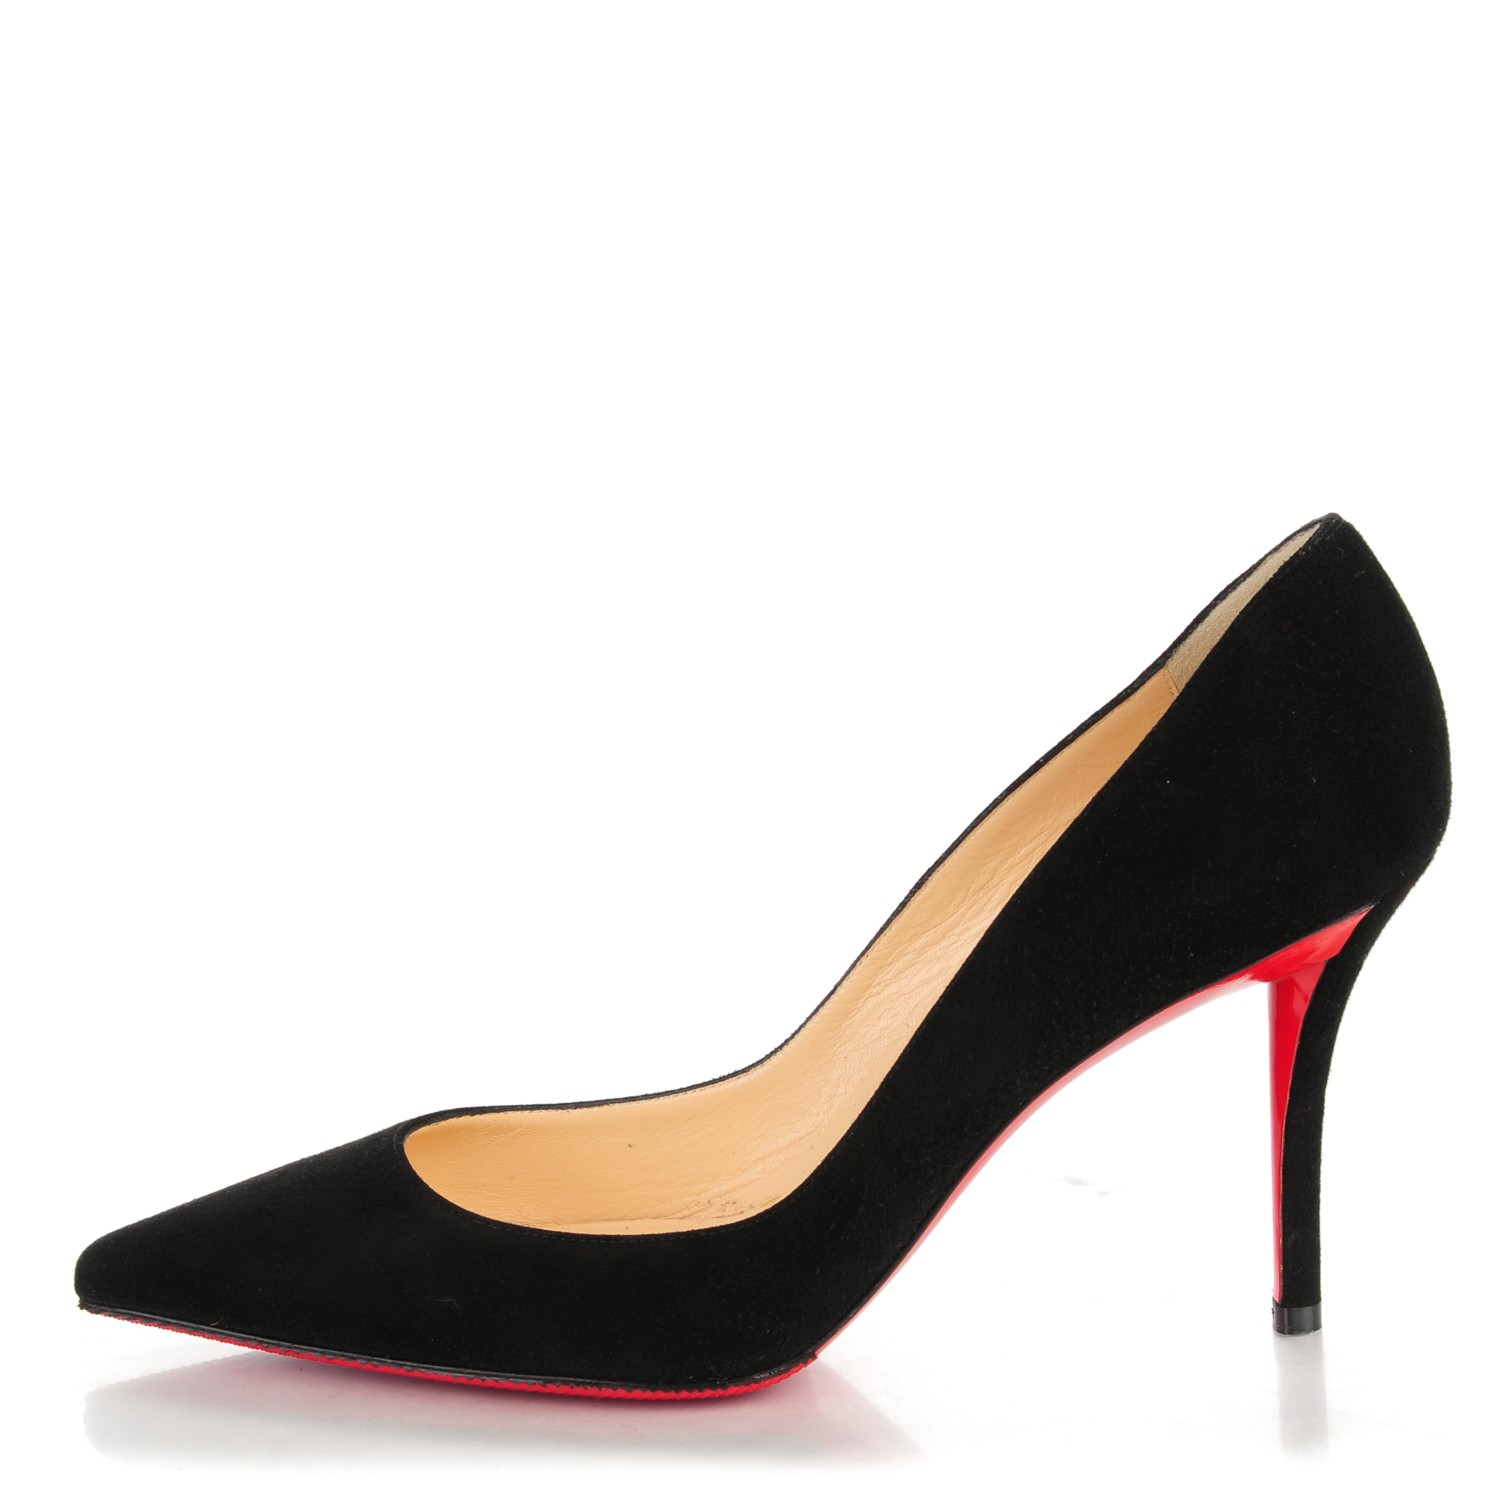 cheap for discount f5a67 419fa CHRISTIAN LOUBOUTIN Suede Apostrophy 85 Pump 38.5 Black 158879